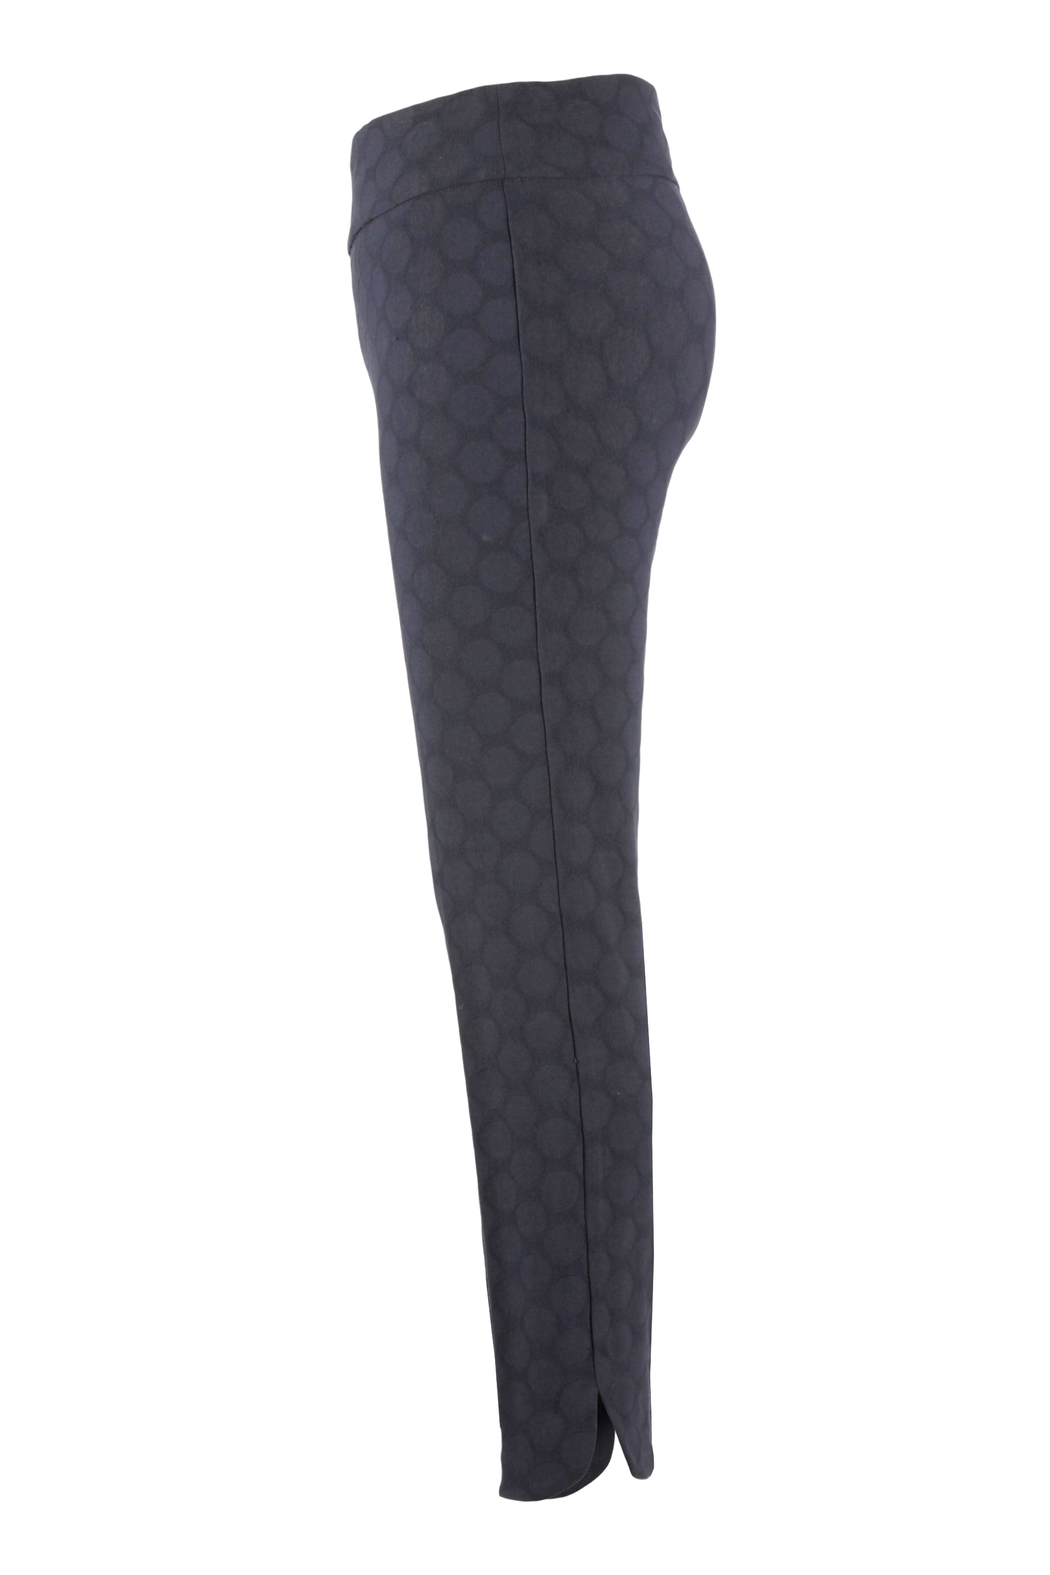 Up! Textured Circle Pant, Navy Blue - Front Full Image